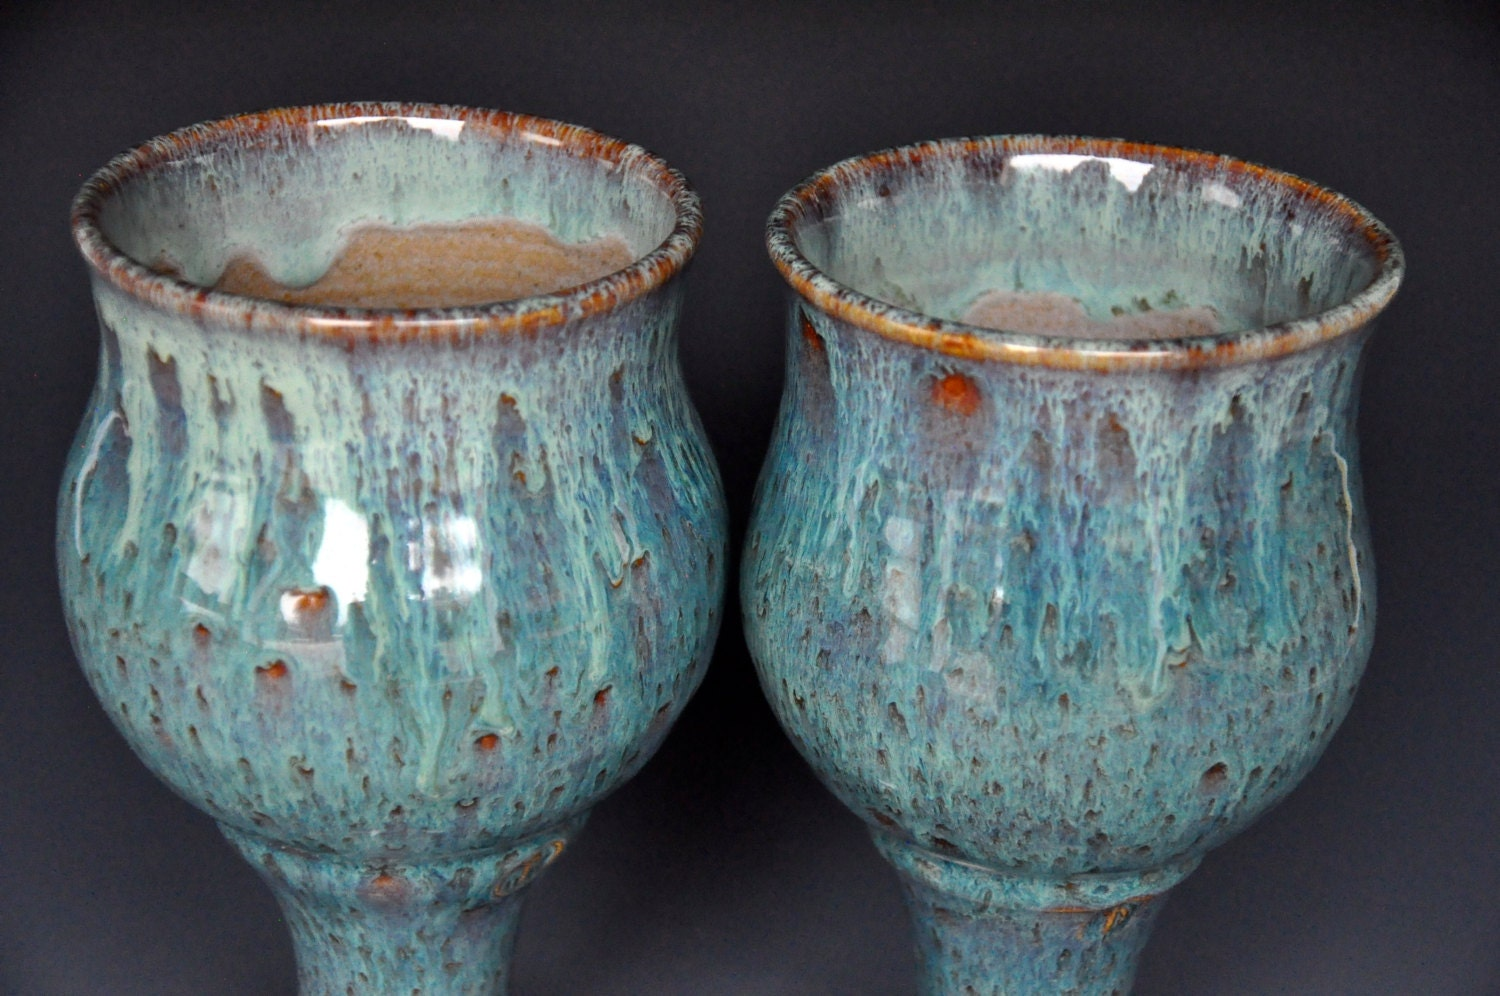 His And Her Goblets Pair Of Pottery Goblets Ceramic Wine